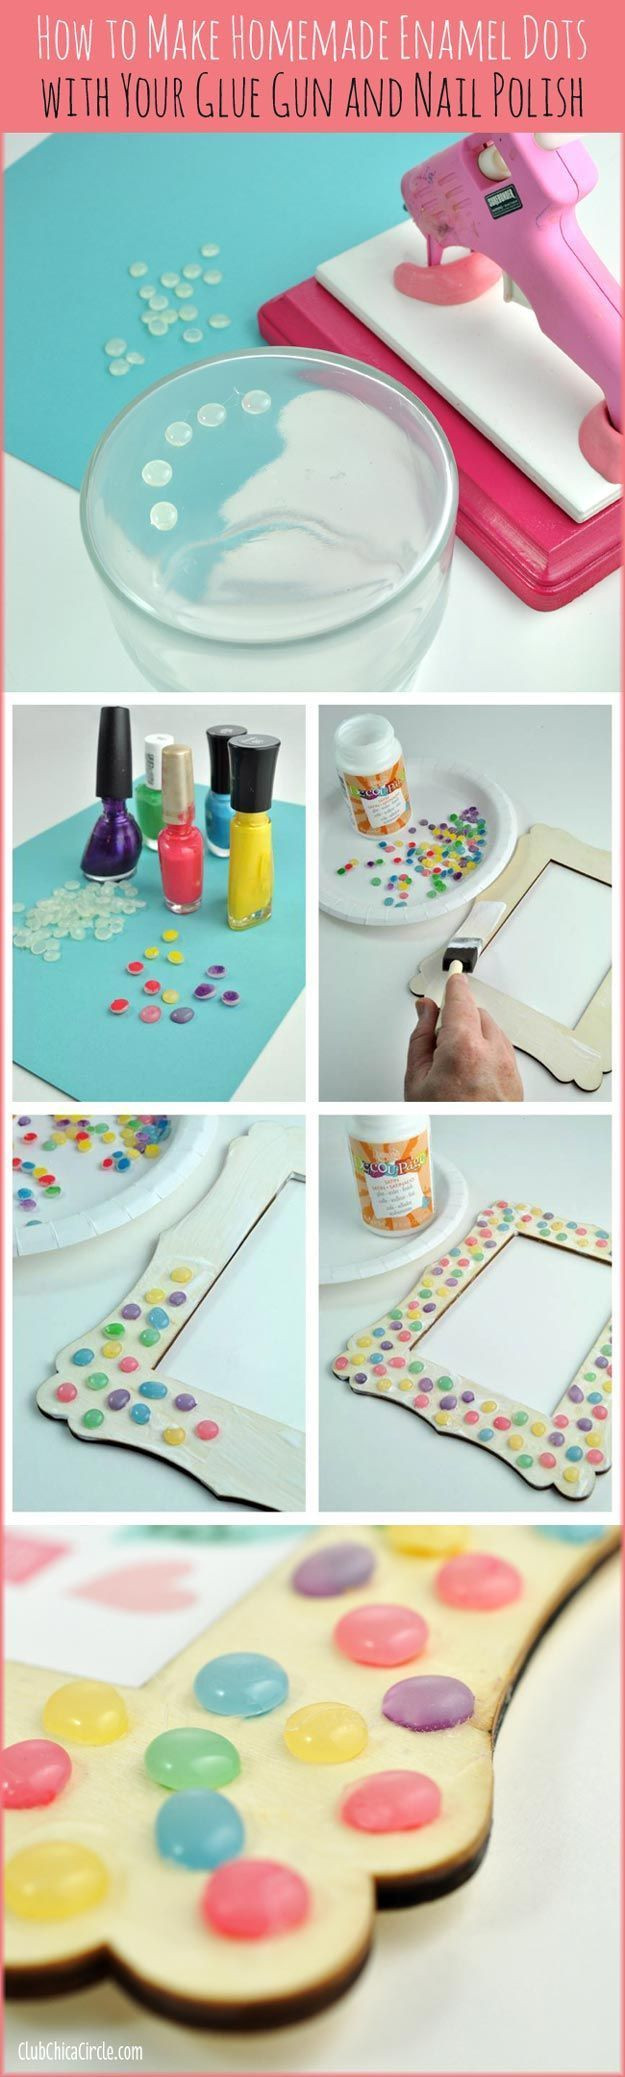 Best ideas about Cheap Crafts For Adults . Save or Pin 1000 ideas about Diy Projects For Teens on Pinterest Now.